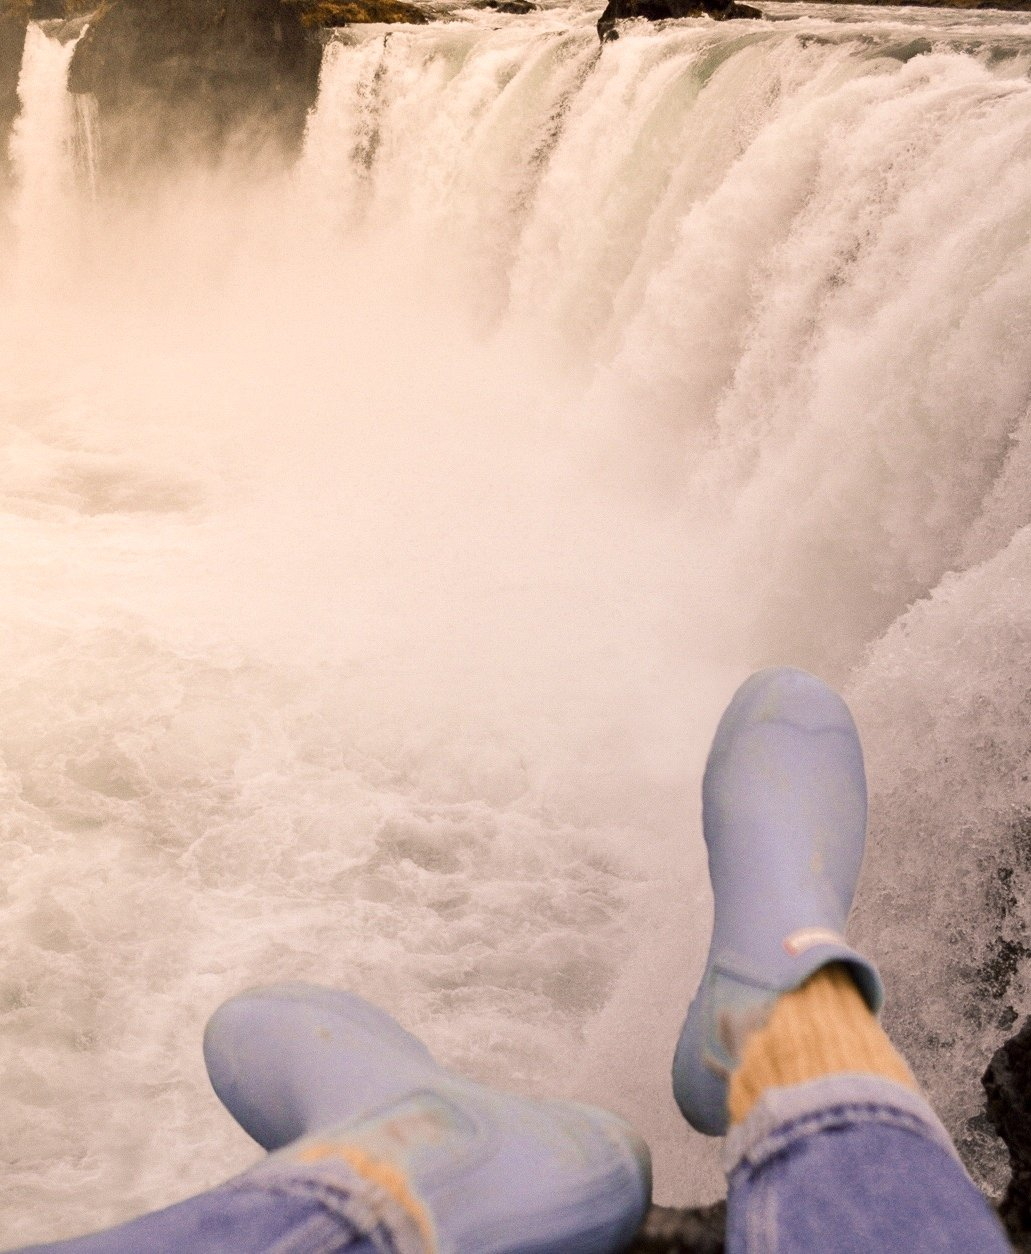 Blue Hunter boots hanging over the edge of Godafoss (a waterfall in Iceland)